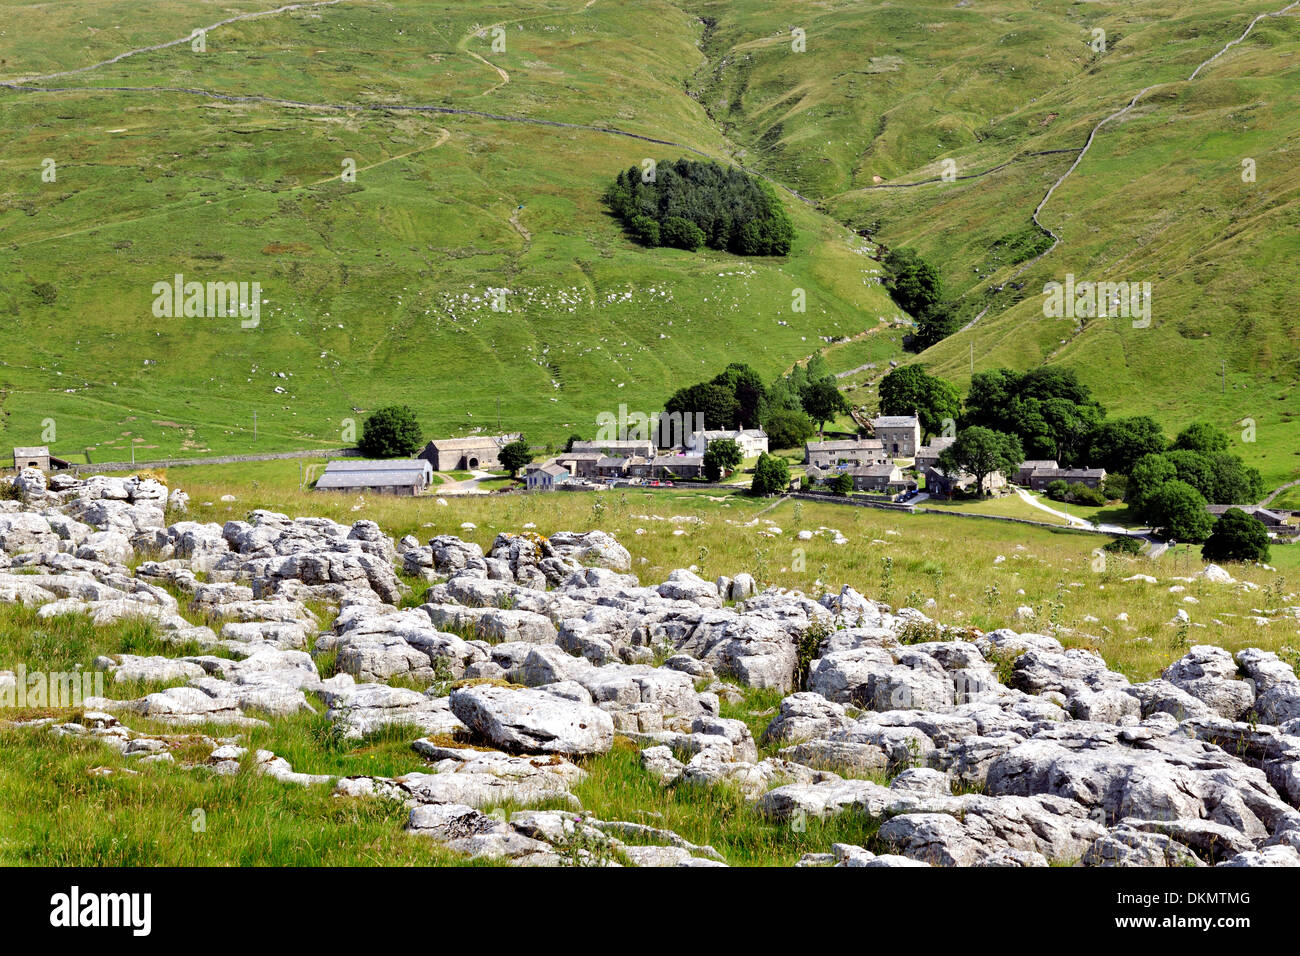 The tranquil and remote location of Halton Gill, Littondale, Yorkshire Dales National Park, England - Stock Image